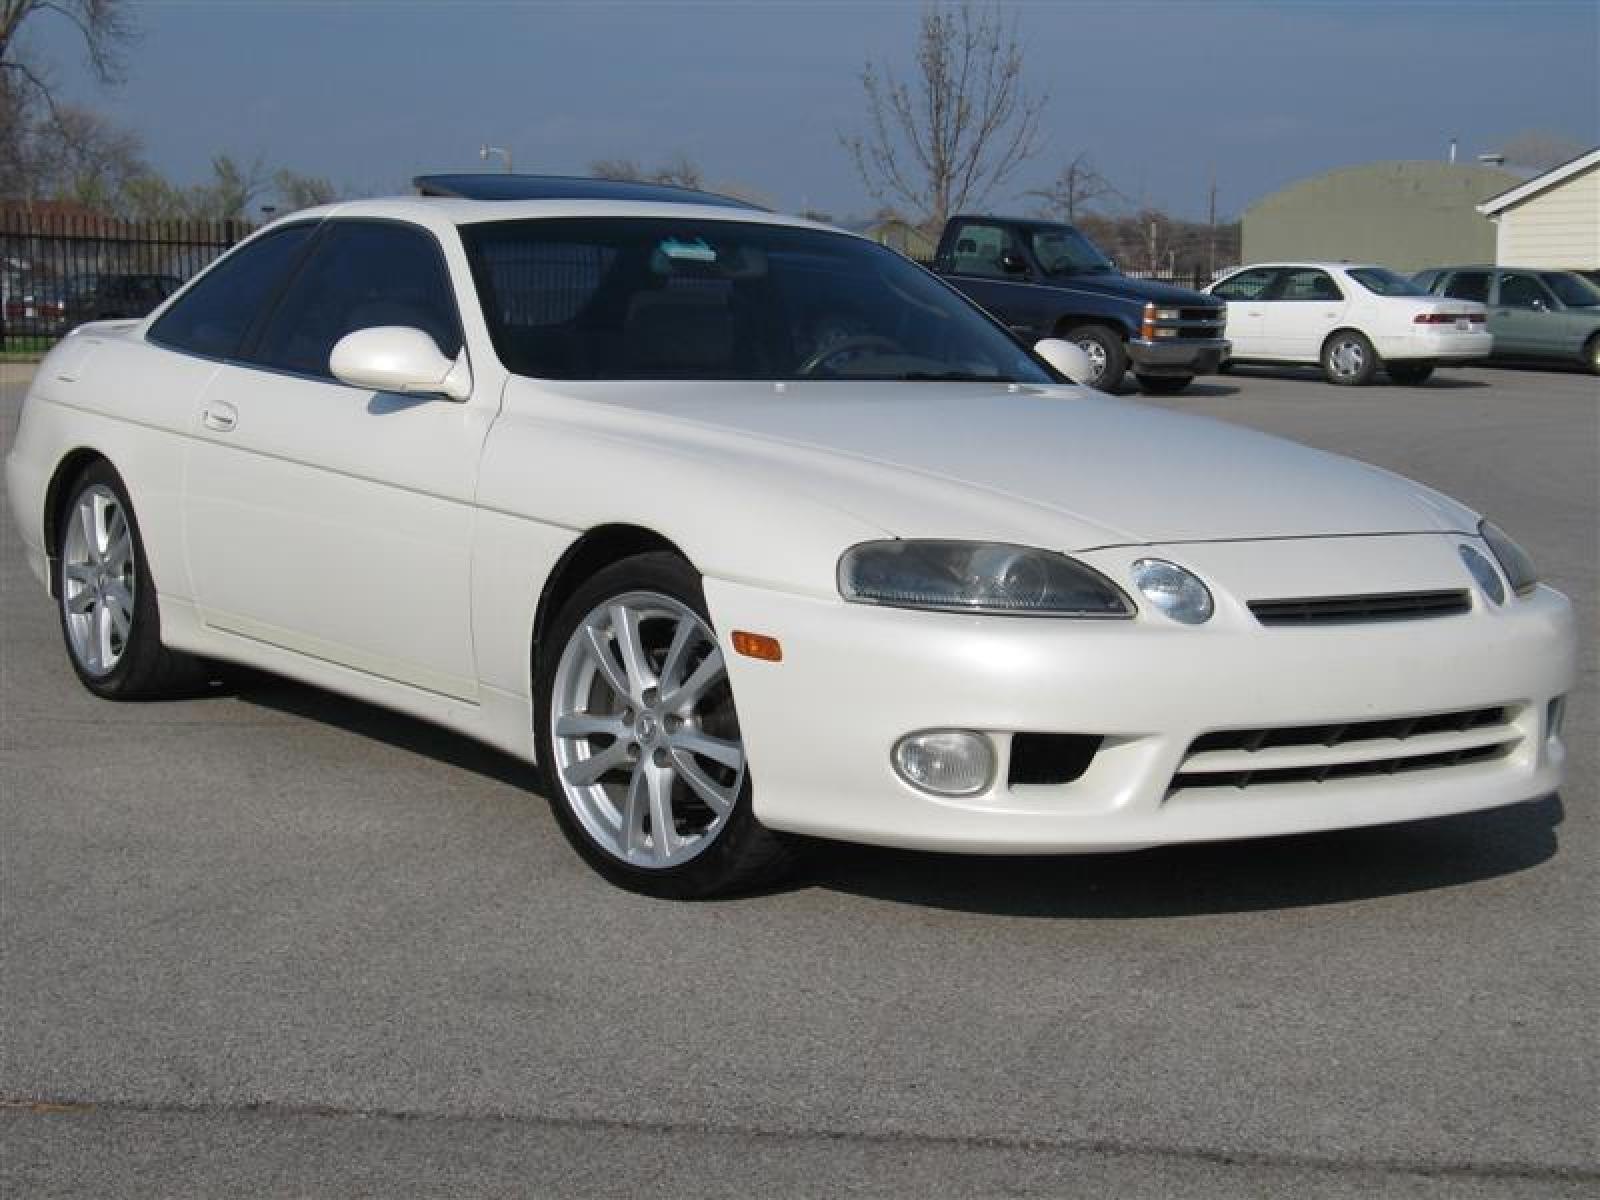 1998 Lexus Sc 400 Information And Photos Zombiedrive